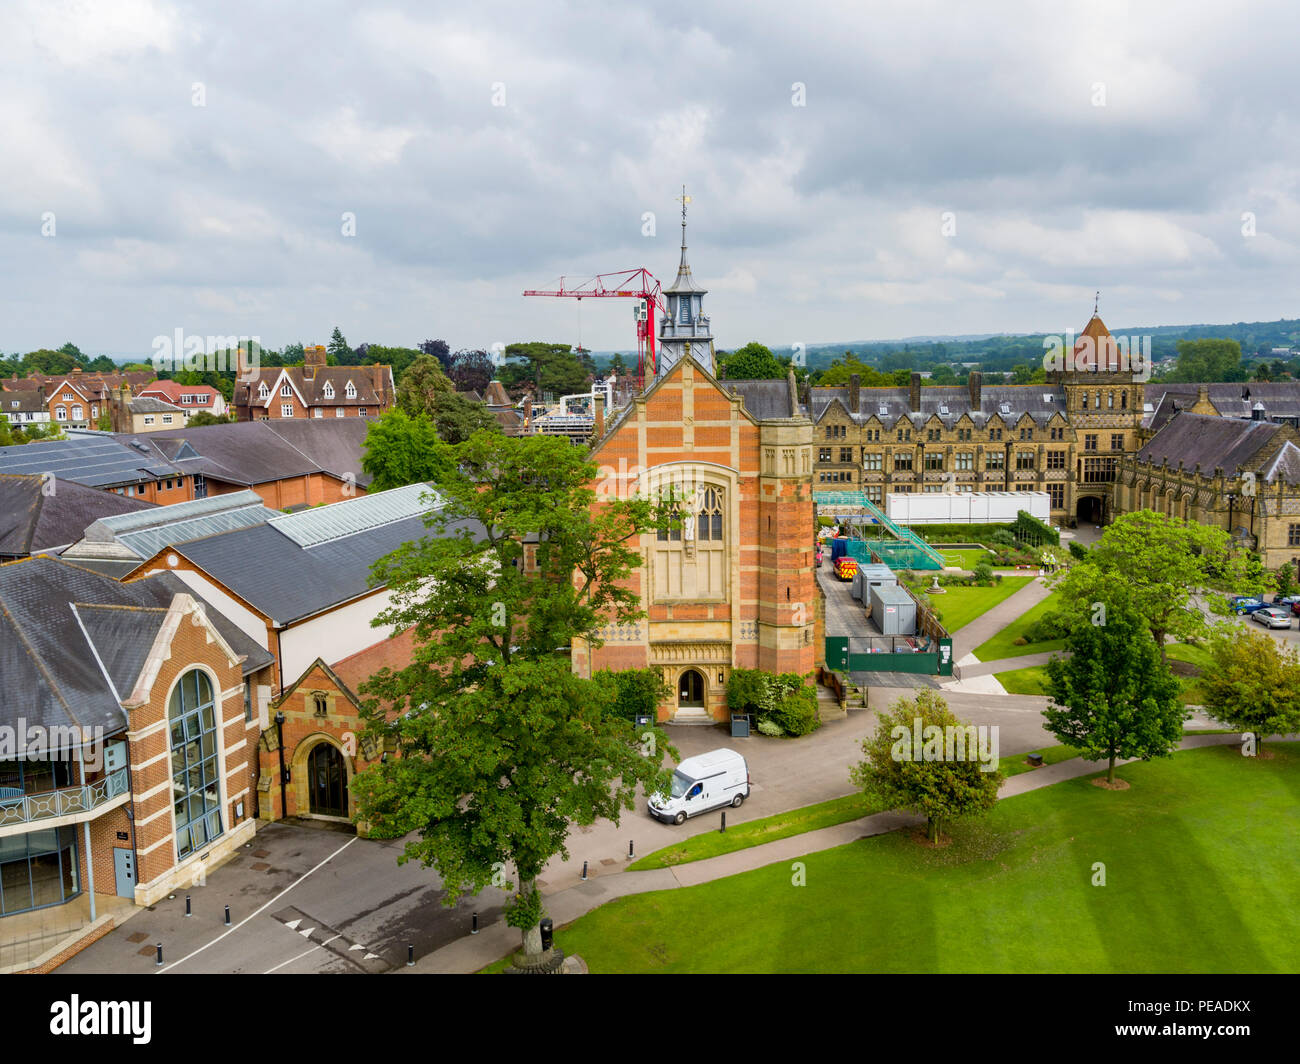 Tonbridge Boys School, Tonbridge, Kent, UK - Stock Image